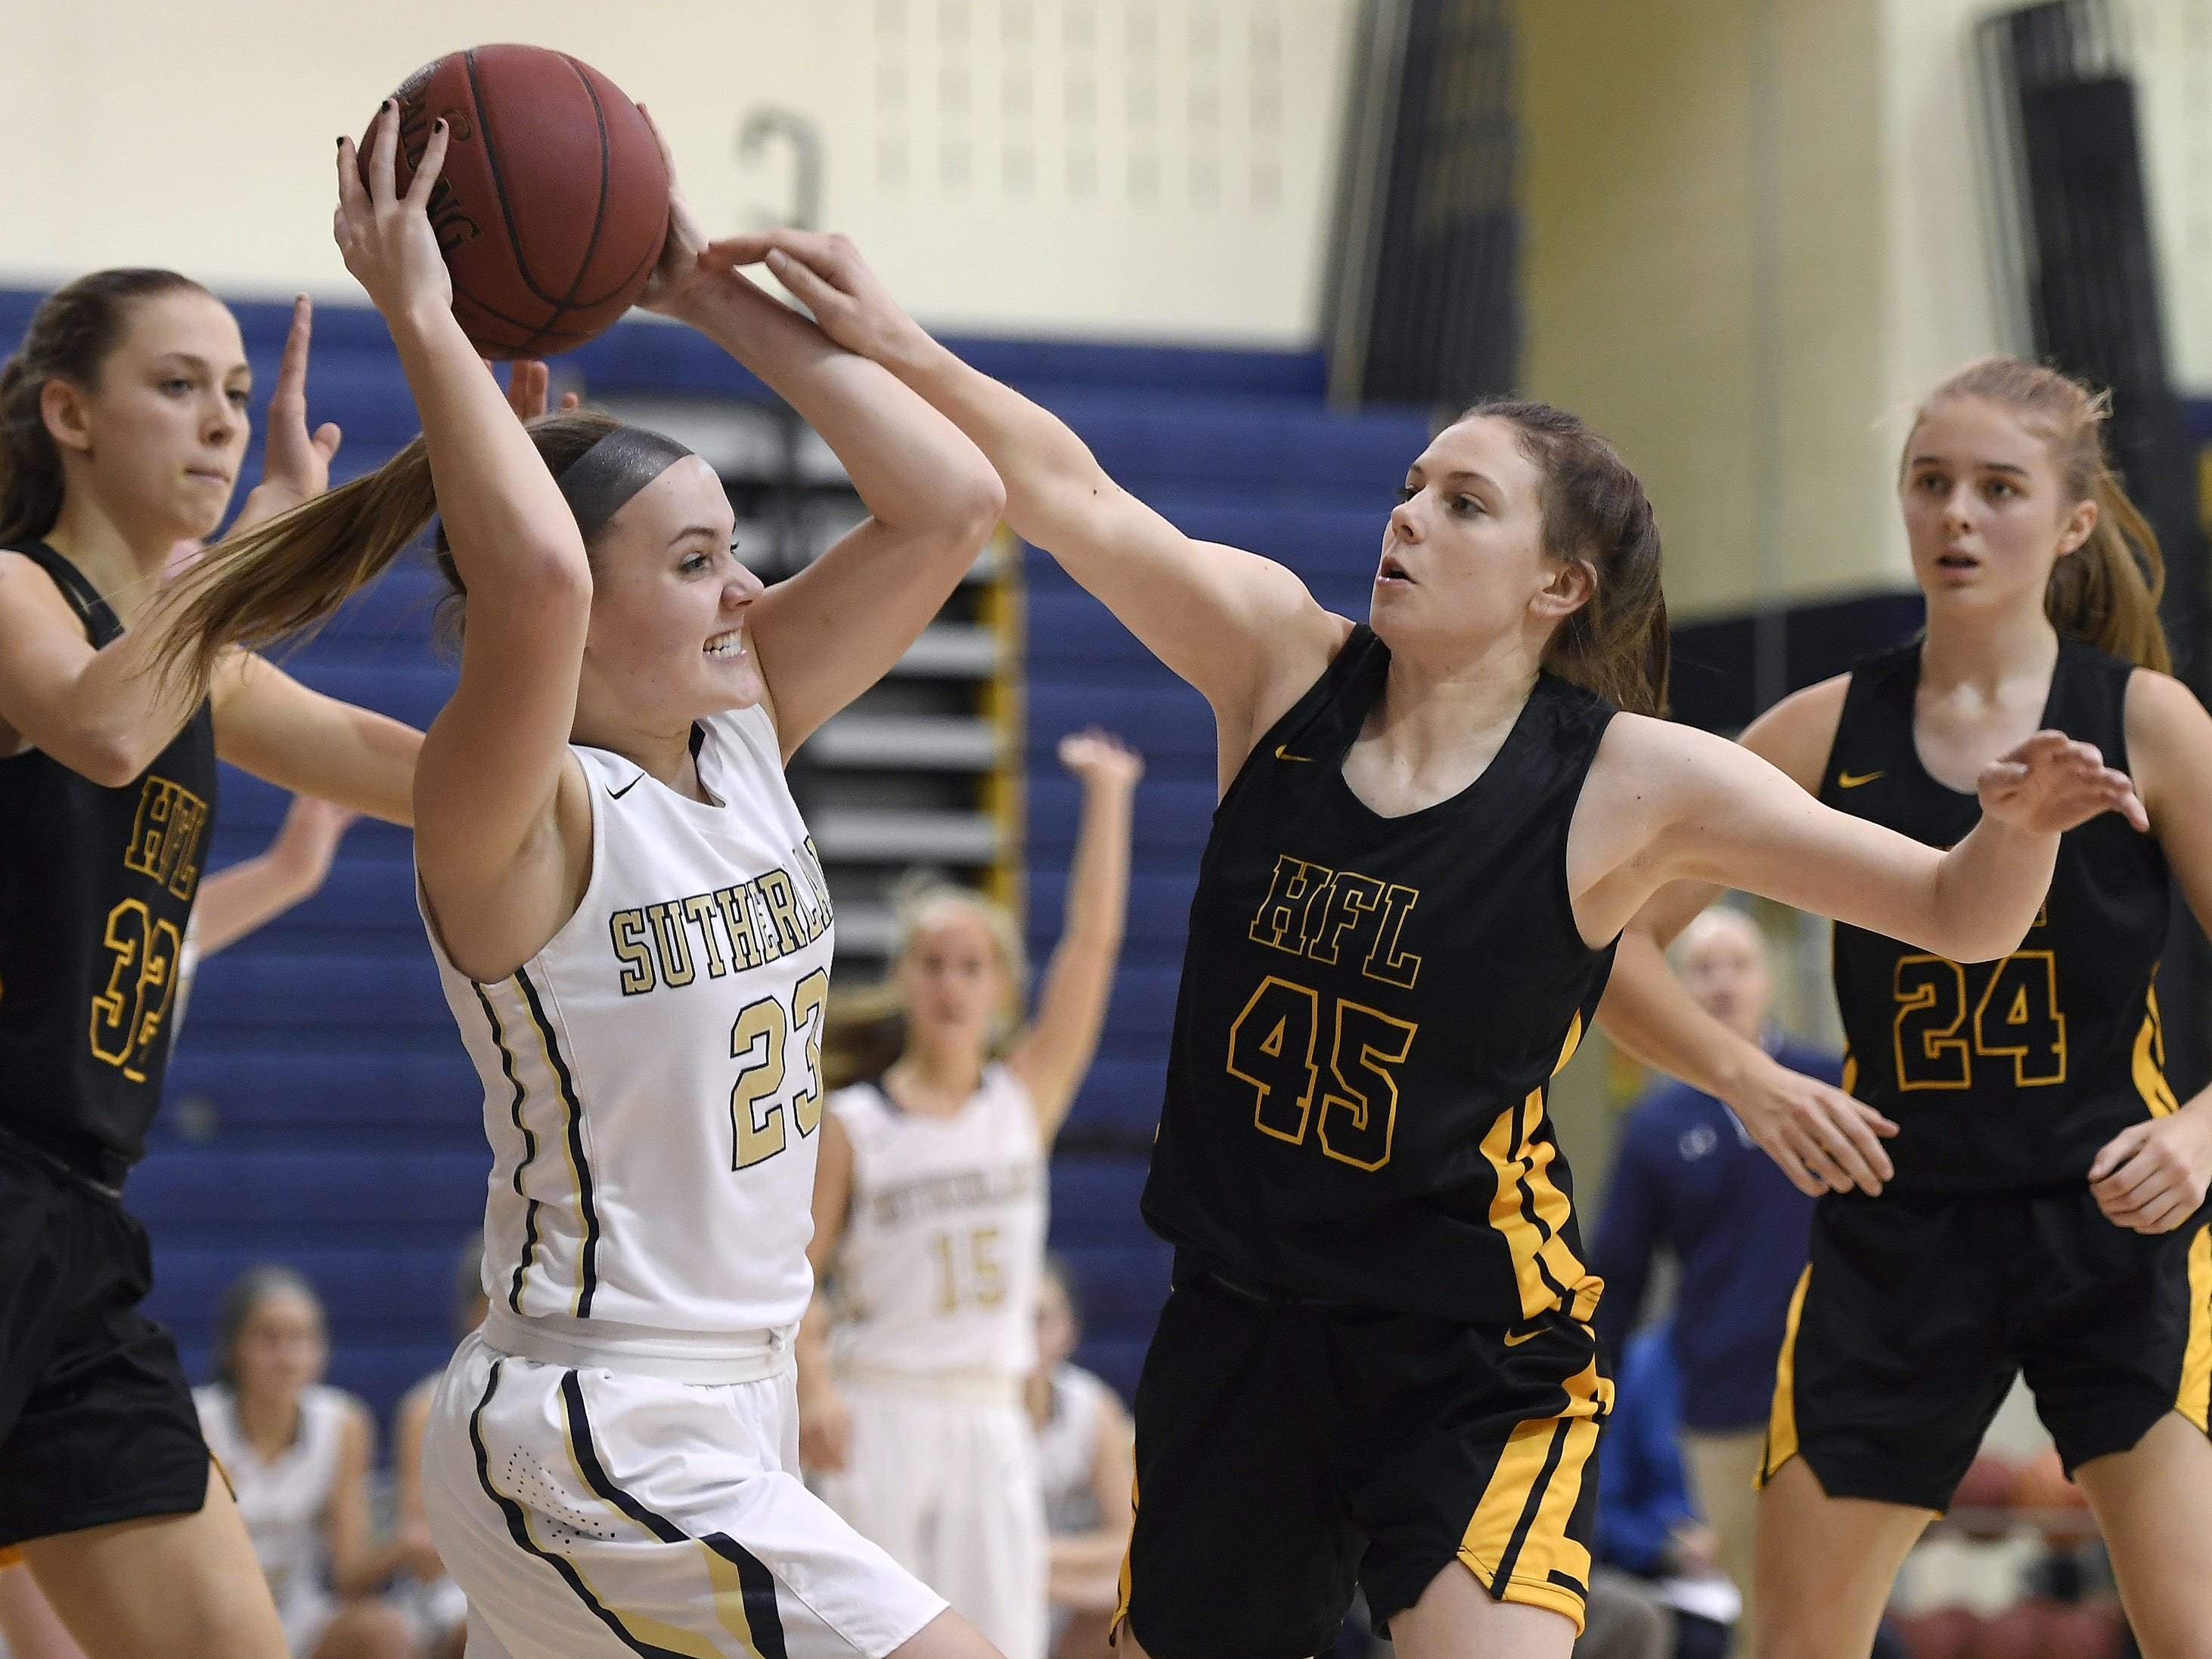 Pittsford Sutherland's Abby Creary, left, looks to pass while defended by HF-L's Morgan Bellavia during a regular season game played at Pittsford Sutherland High School on Thursday, Nov. 29, 2018. Pittsford Sutherland beat Honeoye Falls-Lima in overtime 53-47.